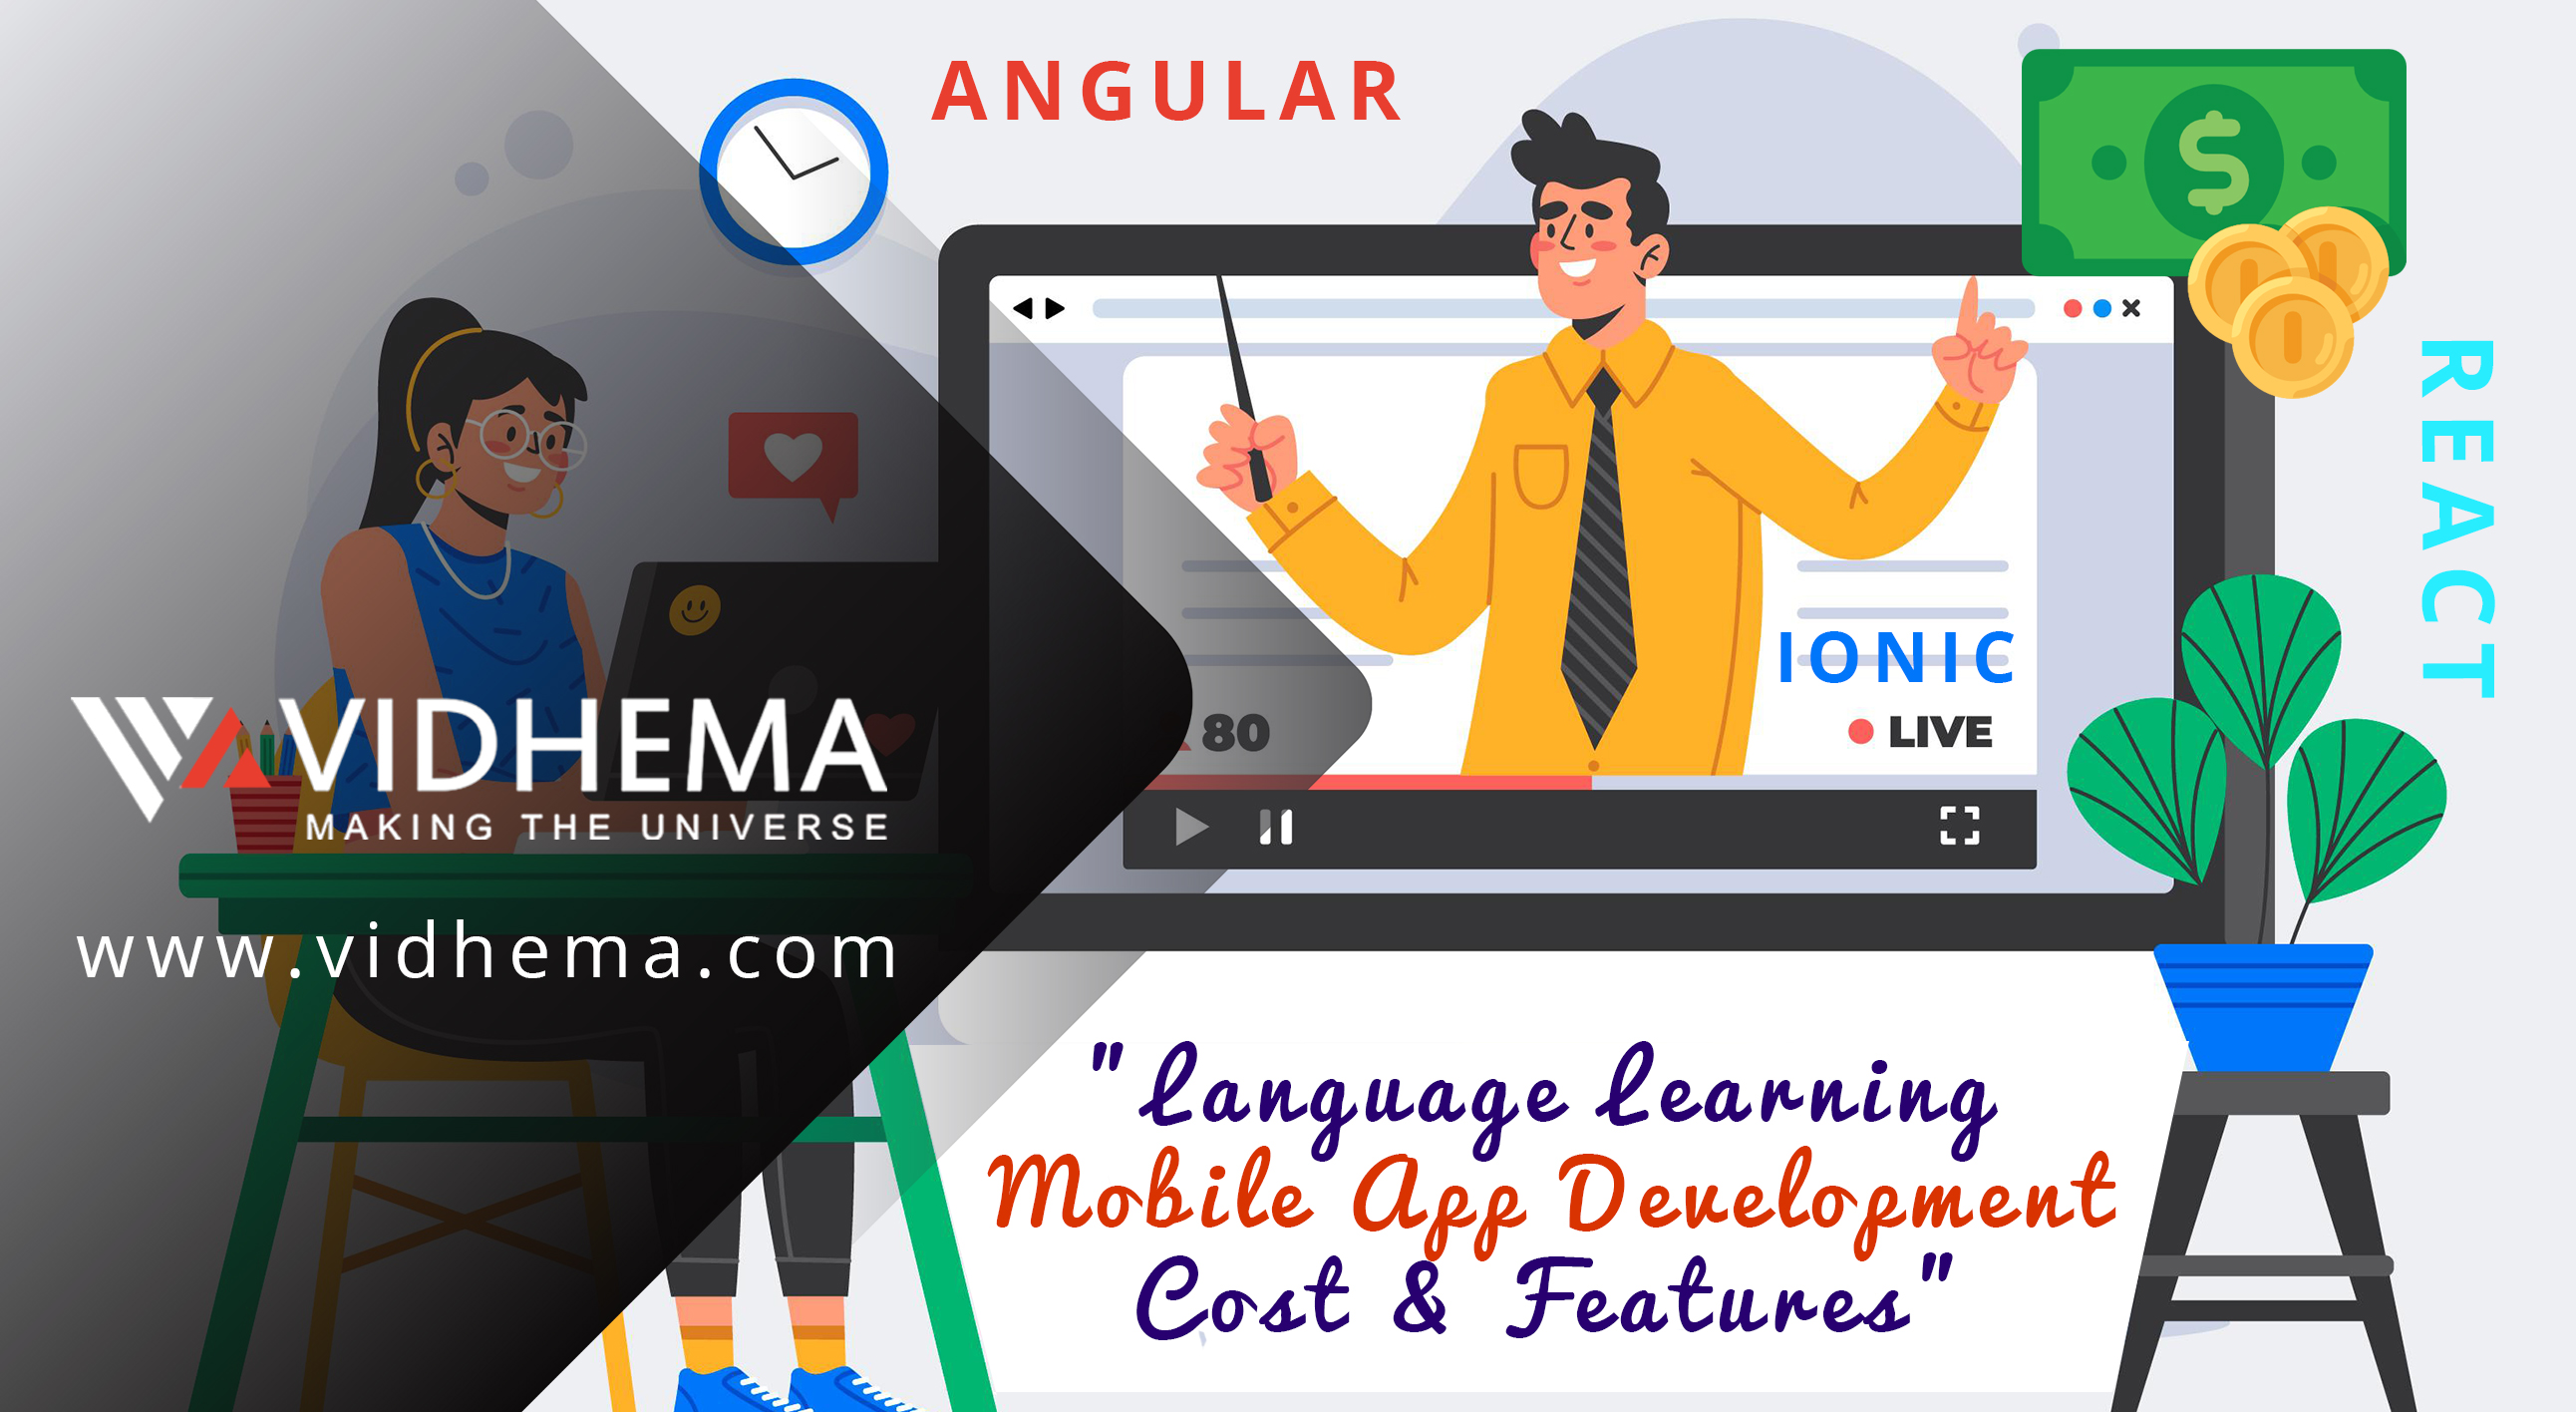 Language Learning Mobile App Development Cost & Features